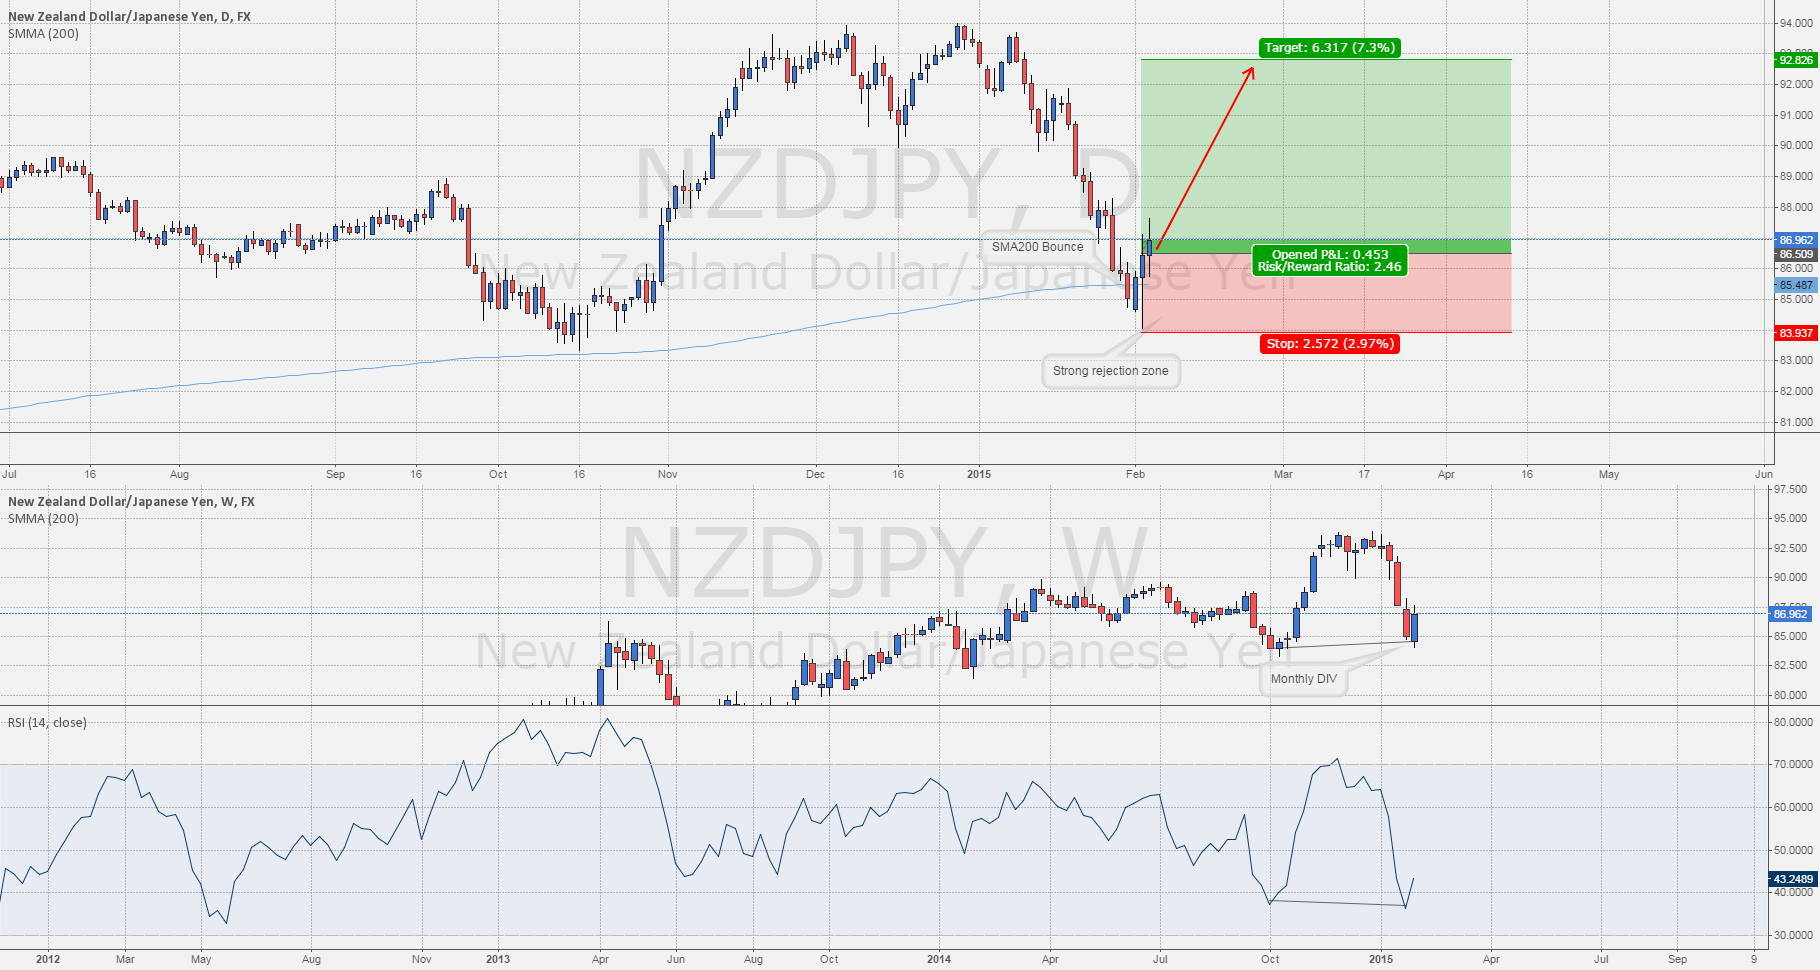 #NZDJPY: Bounce on Daily SMA200